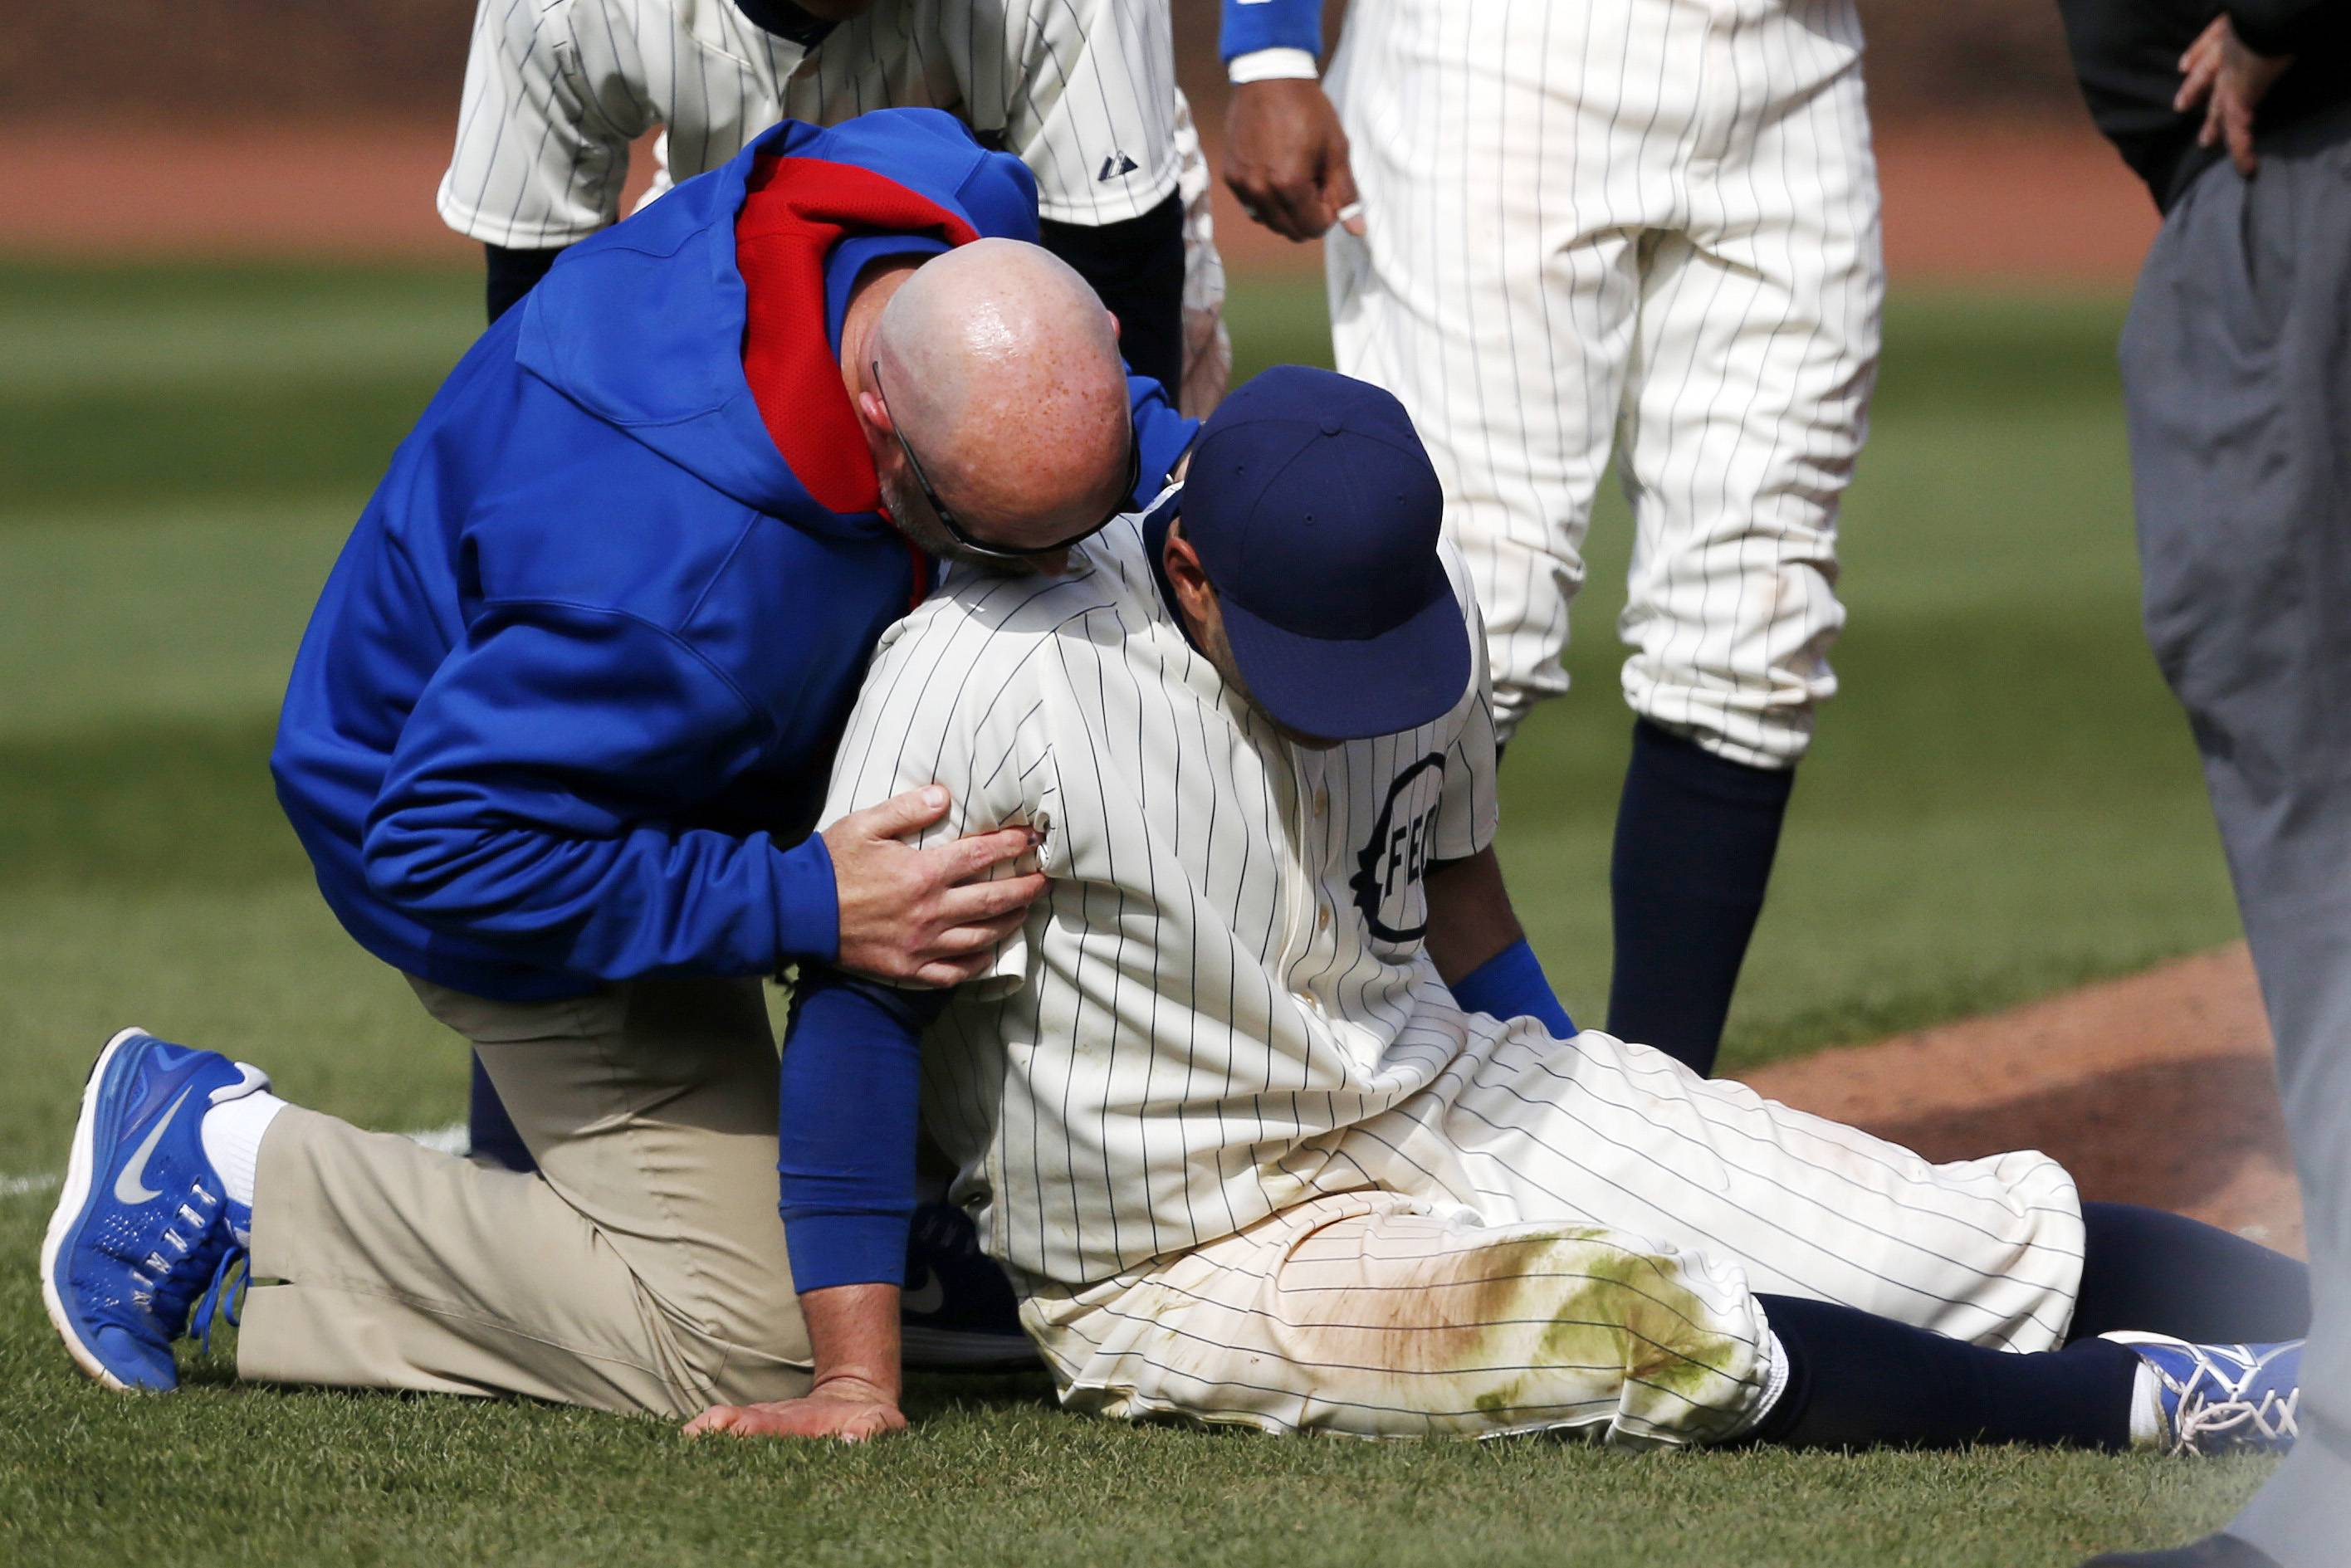 Cubs right fielder Justin Ruggiano suffered a hamstring injury in the ninth inning Wednesday at the Arizona Diamondbacks rallied to beat the Cubs at Wrigley Field.